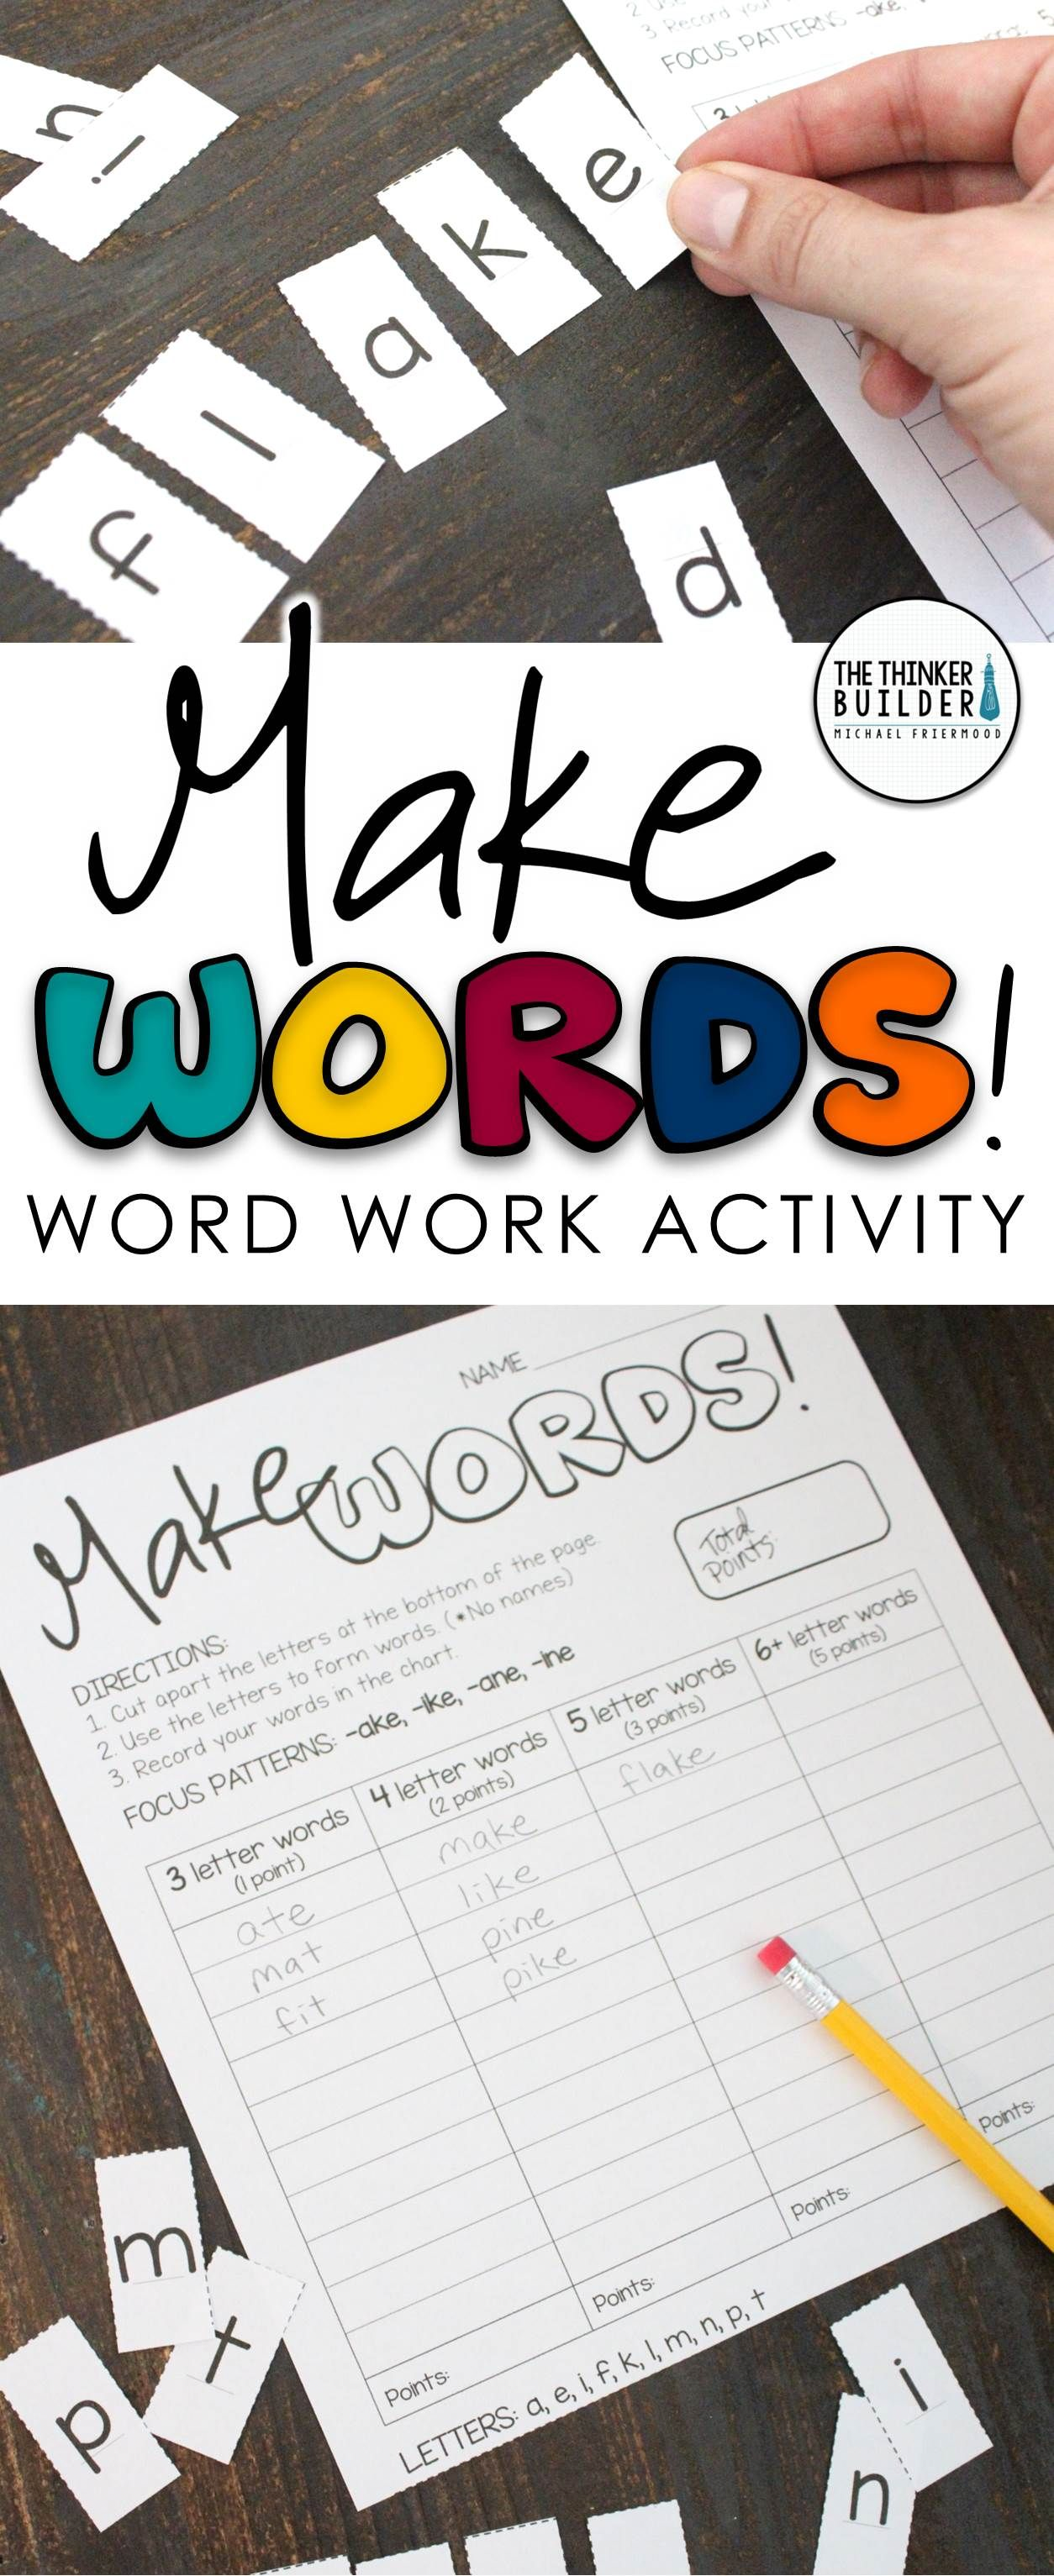 Make Words! Word Work - Word Study Activity | Pinterest | Spelling ...